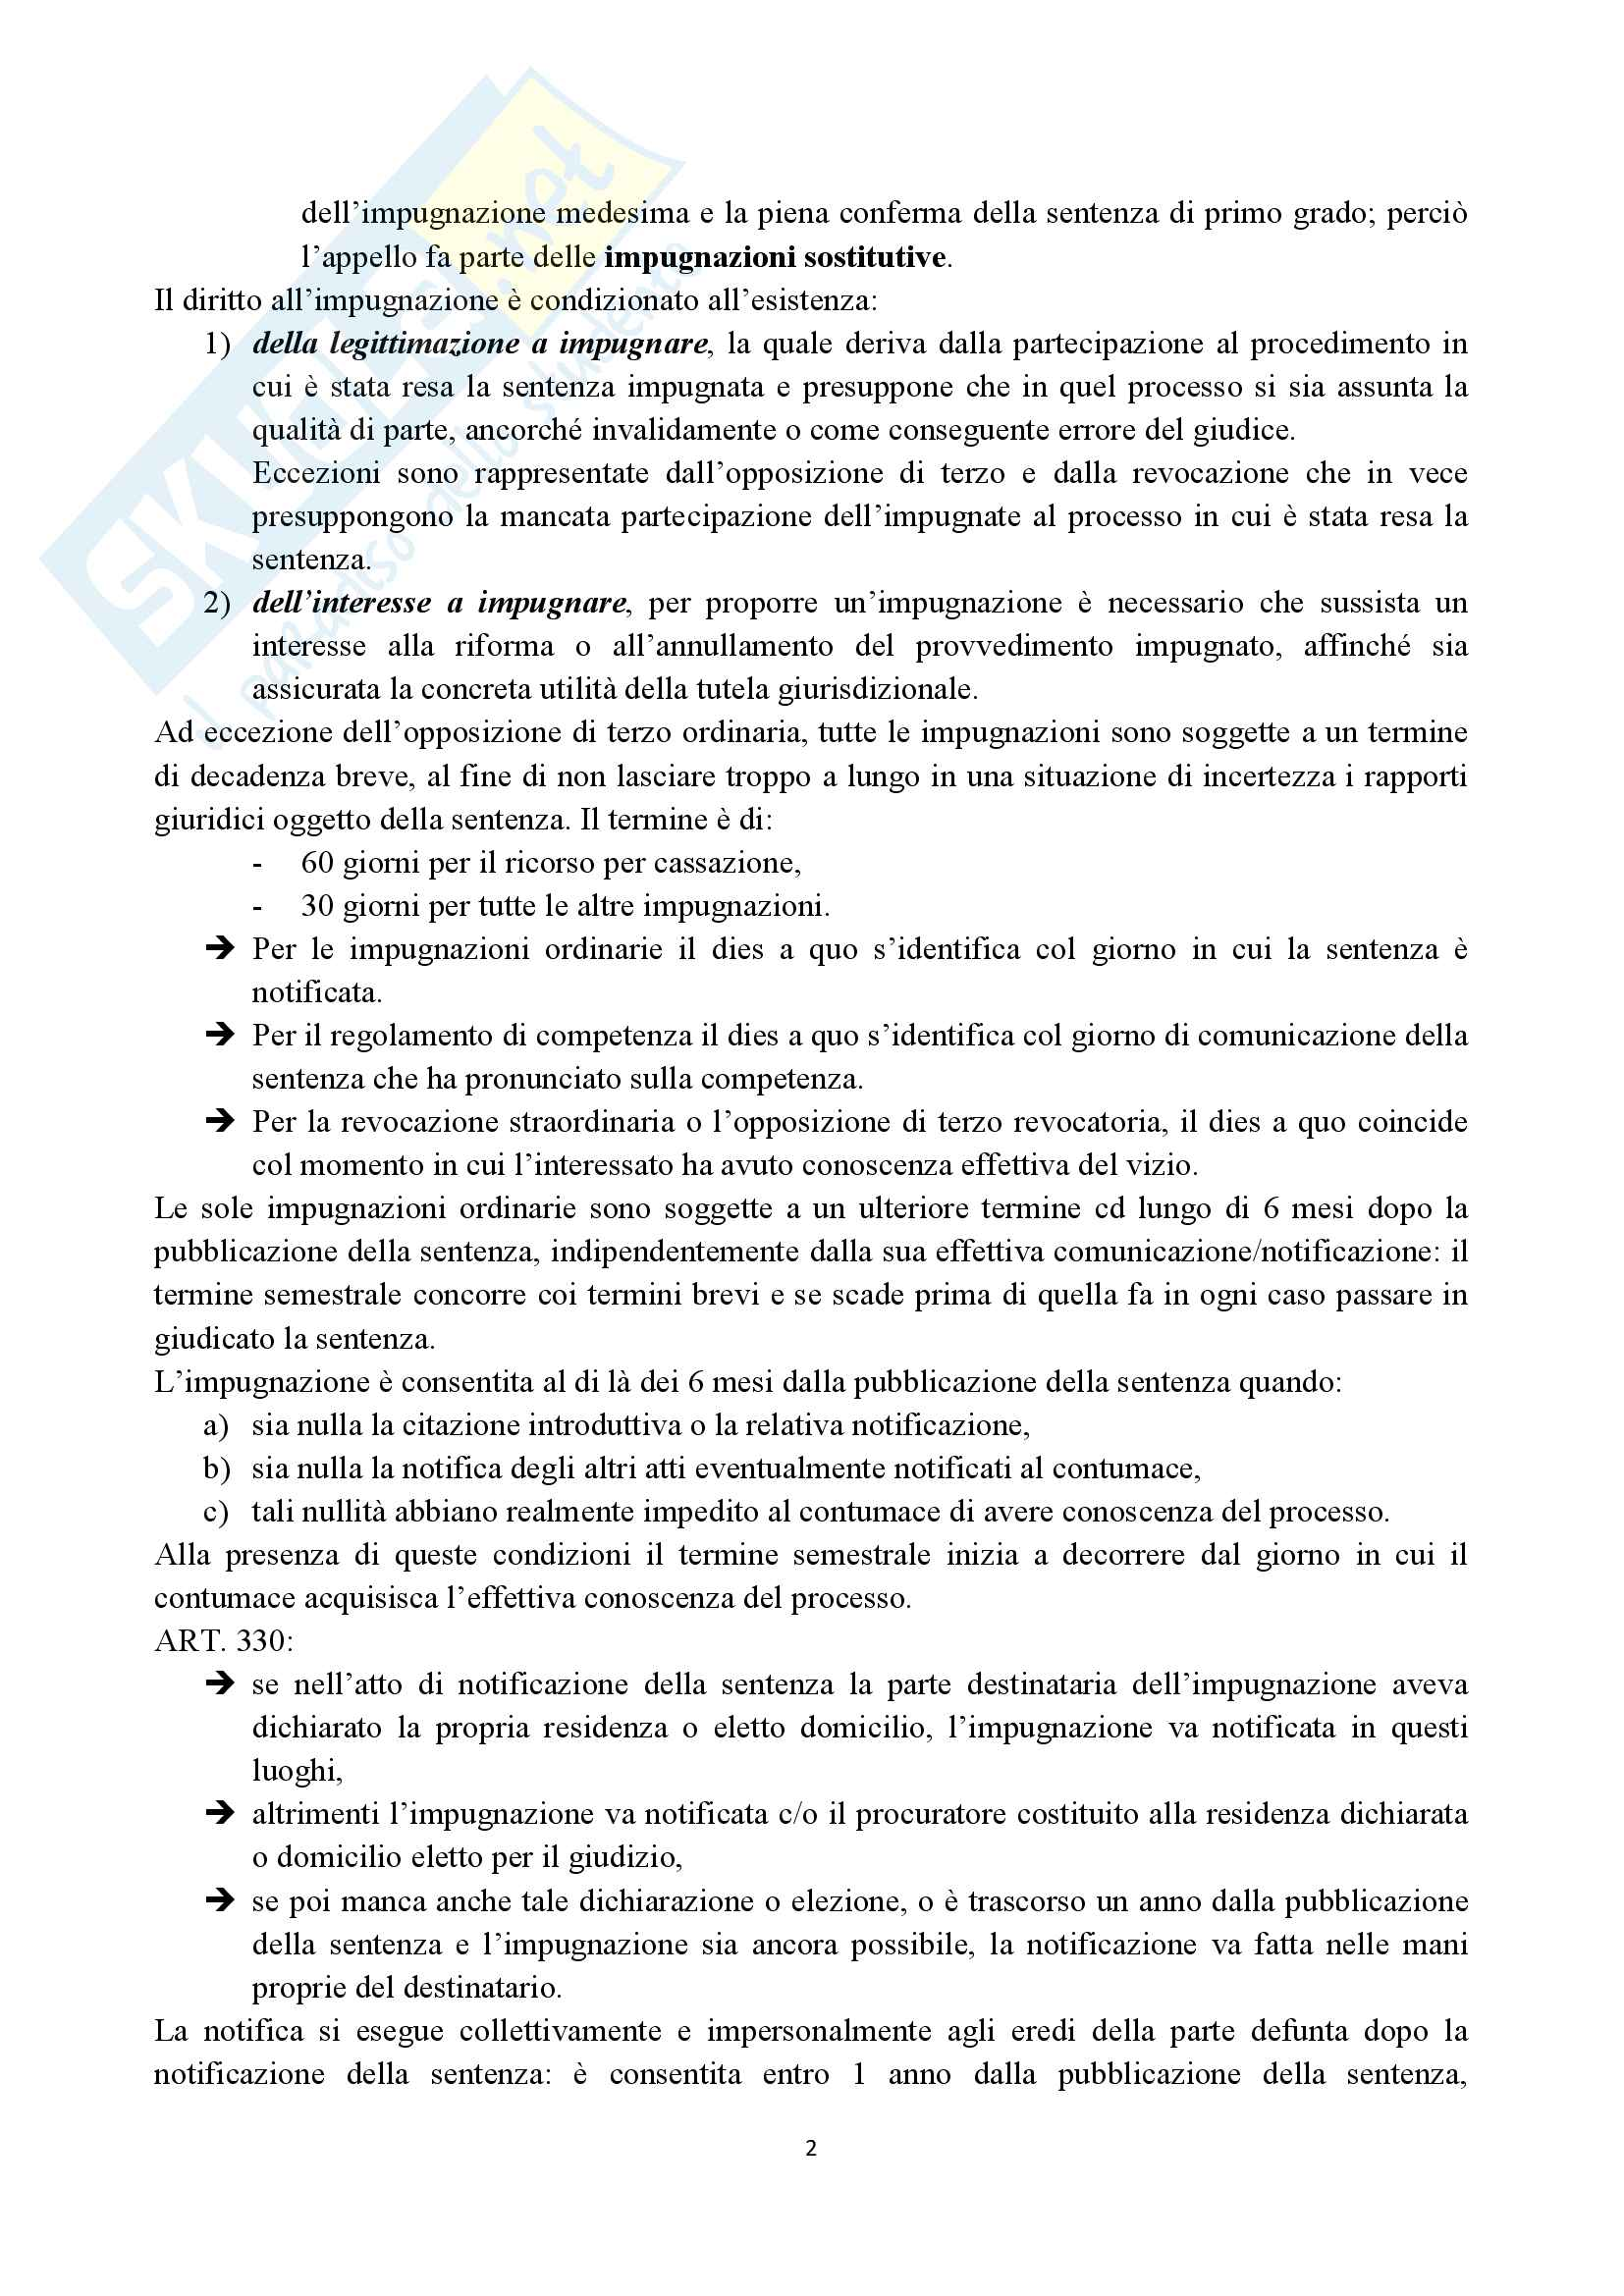 Procedura civile: le impugnazioni Pag. 2